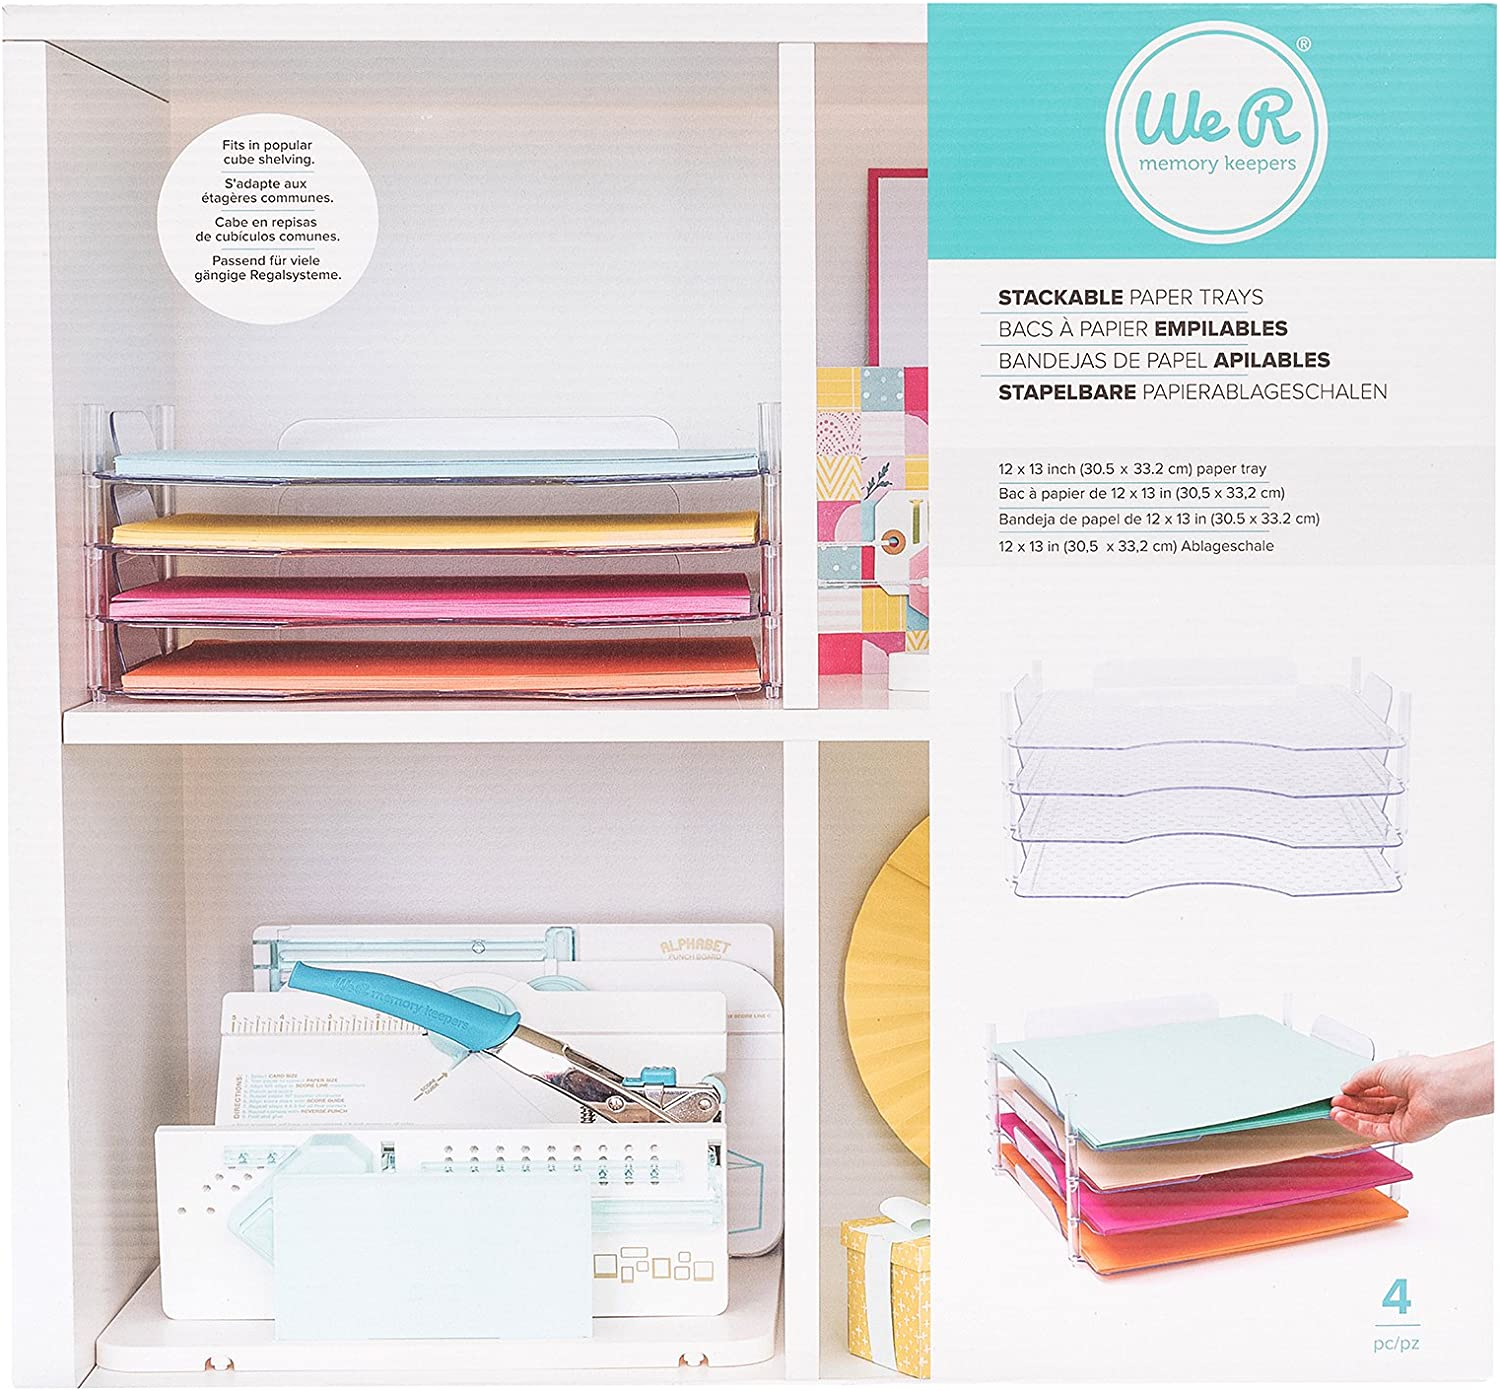 We R Memory Keepers 4 Piece 12 x 12 Inch Stackable Trays Bandejas para Papeles apilables, transparant: Amazon.es: Hogar